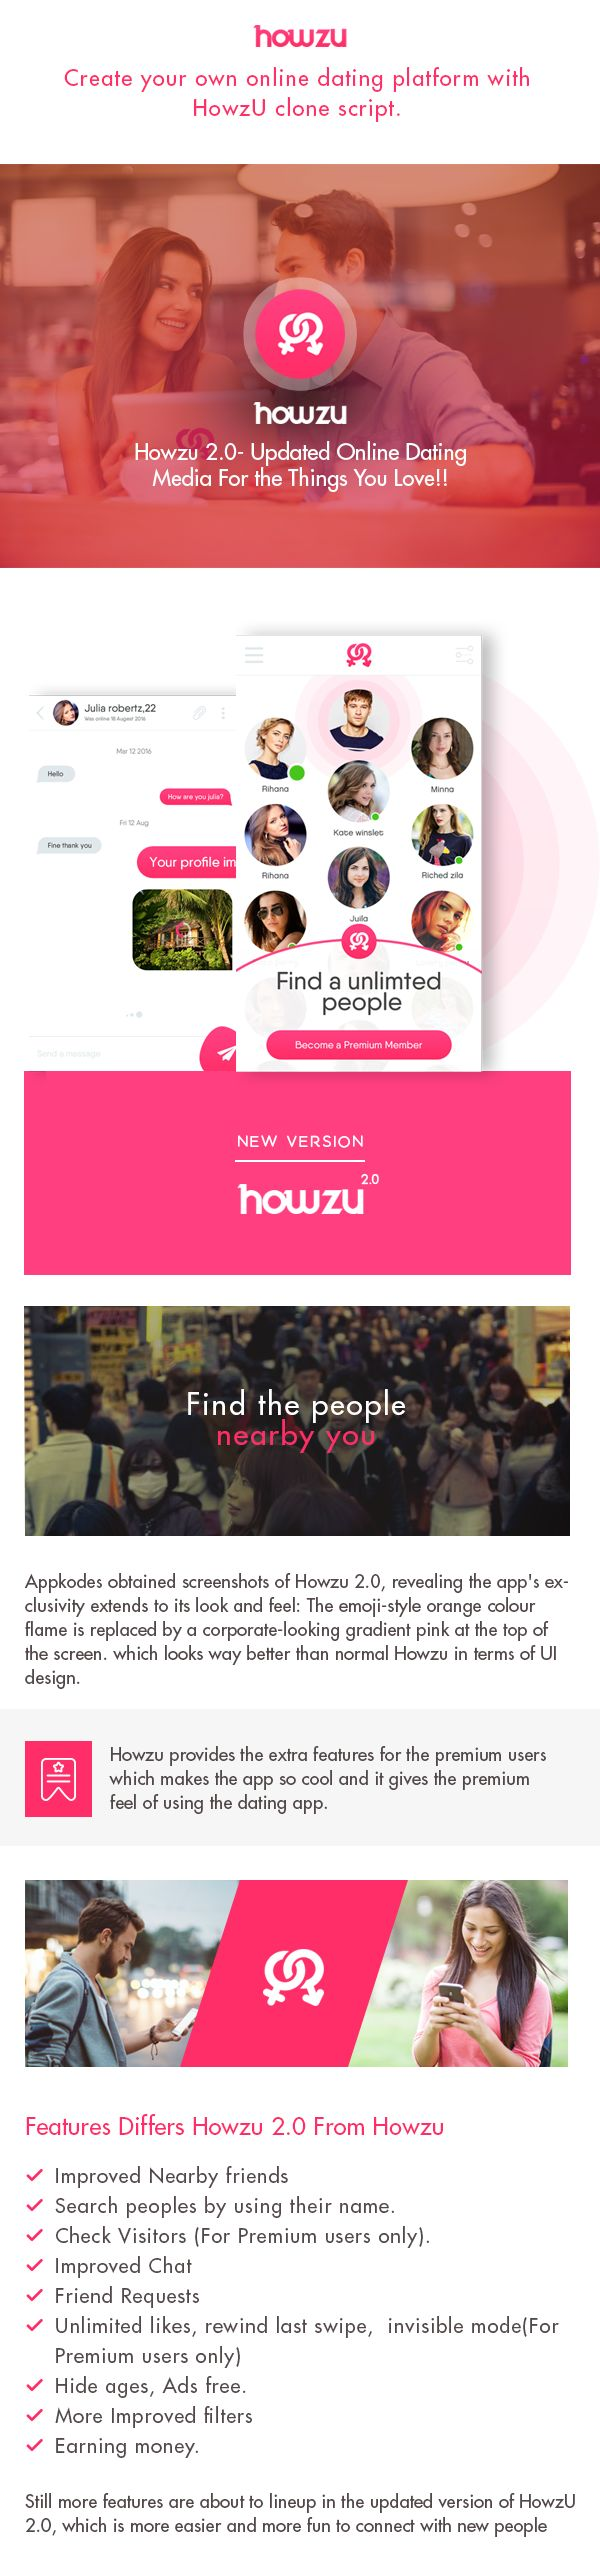 We Meet Peoples in our day to day life but sadly we couldn't get to know everyone.  Likewise in HowzU we could meet more people but it's a little bit different from our day to day life. Here HowzU is designed with PHP TINDER CLONE which actually allows you to get to know the people you are interested.